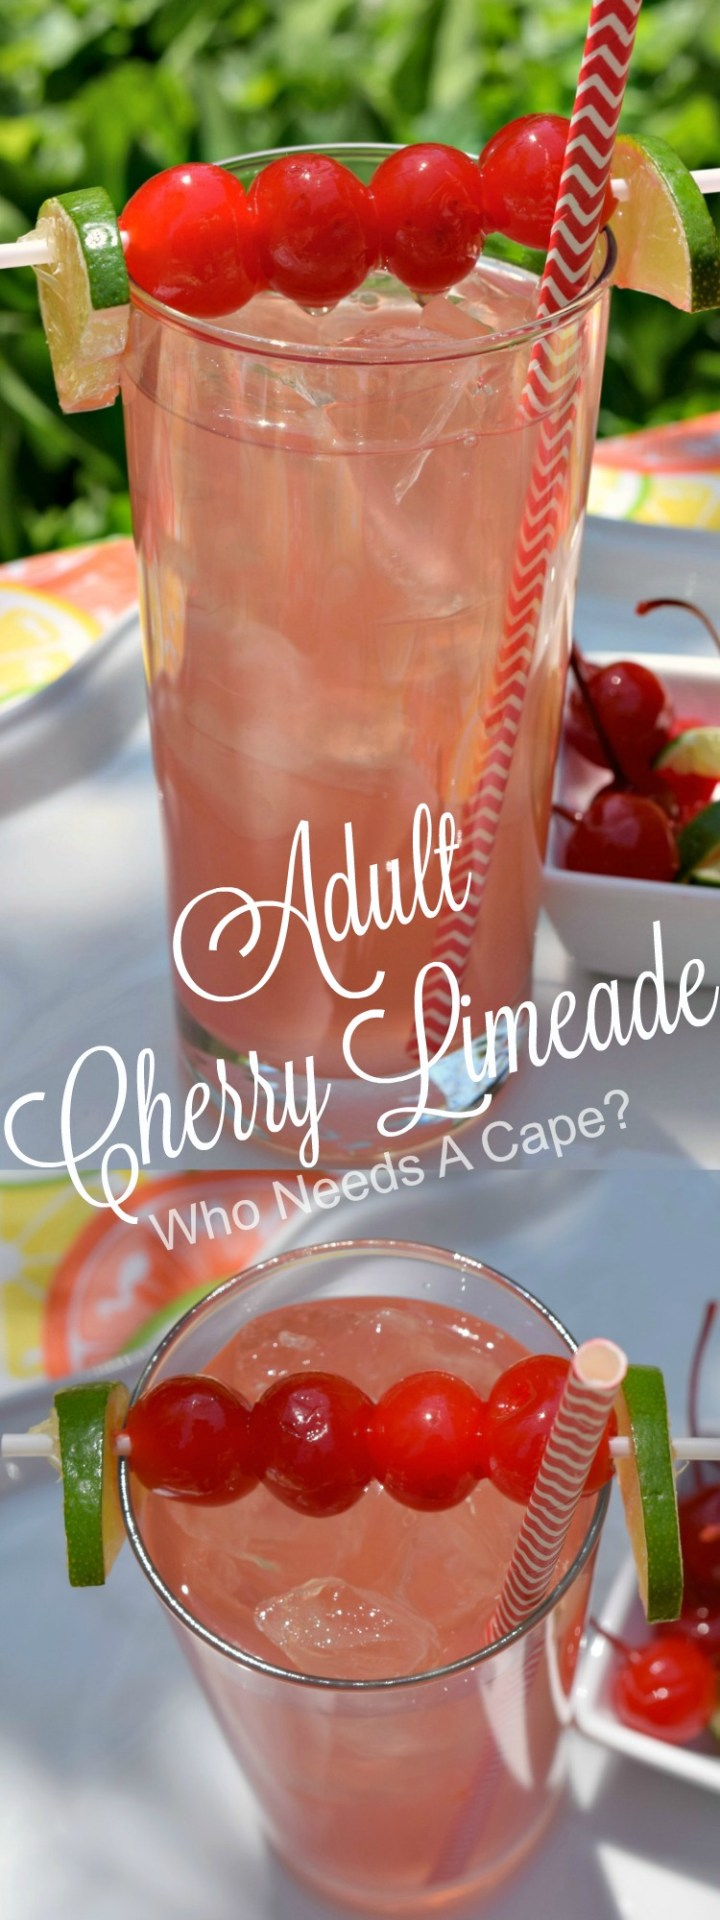 Summer is just made for fruity cocktails! One of my favorites is Adult Cherry Limeade, a little tart, a little sweet, a whole lot of yum!